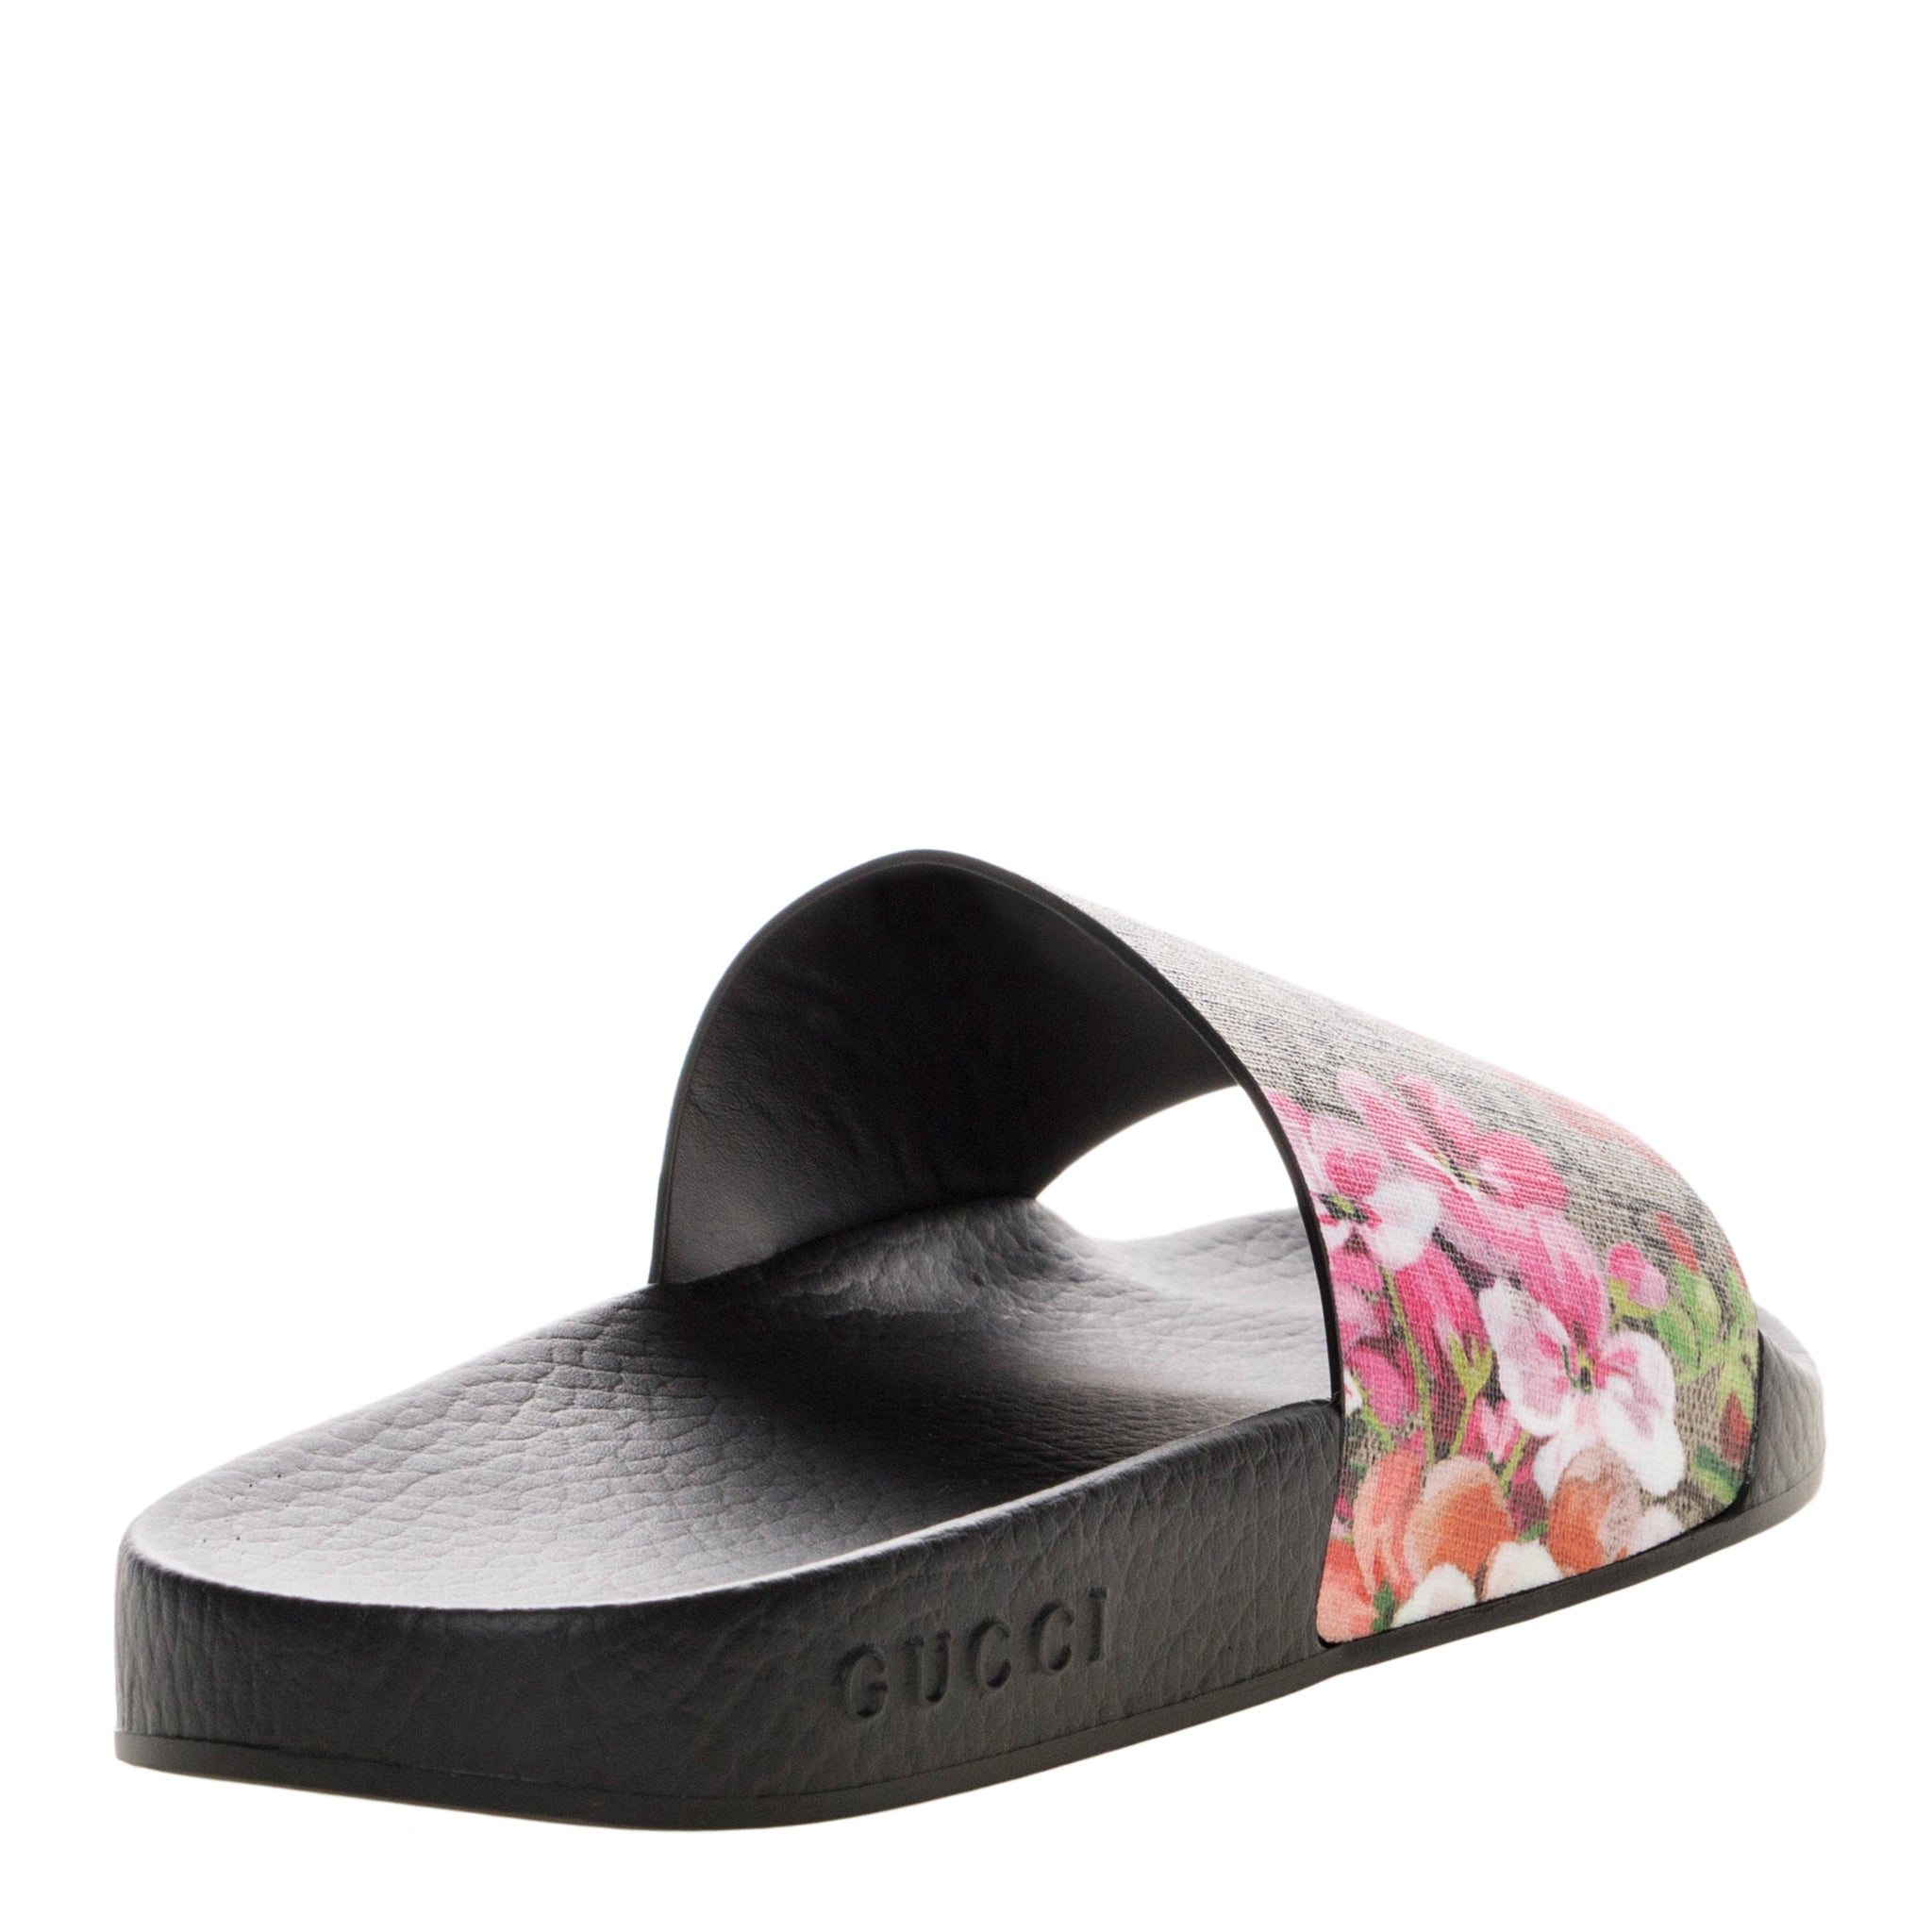 f0d2c7e4125 Shop Gucci Women s GG Blooms Supreme Rubber Sole Slide Sandals - Free  Shipping Today - Overstock - 11614566